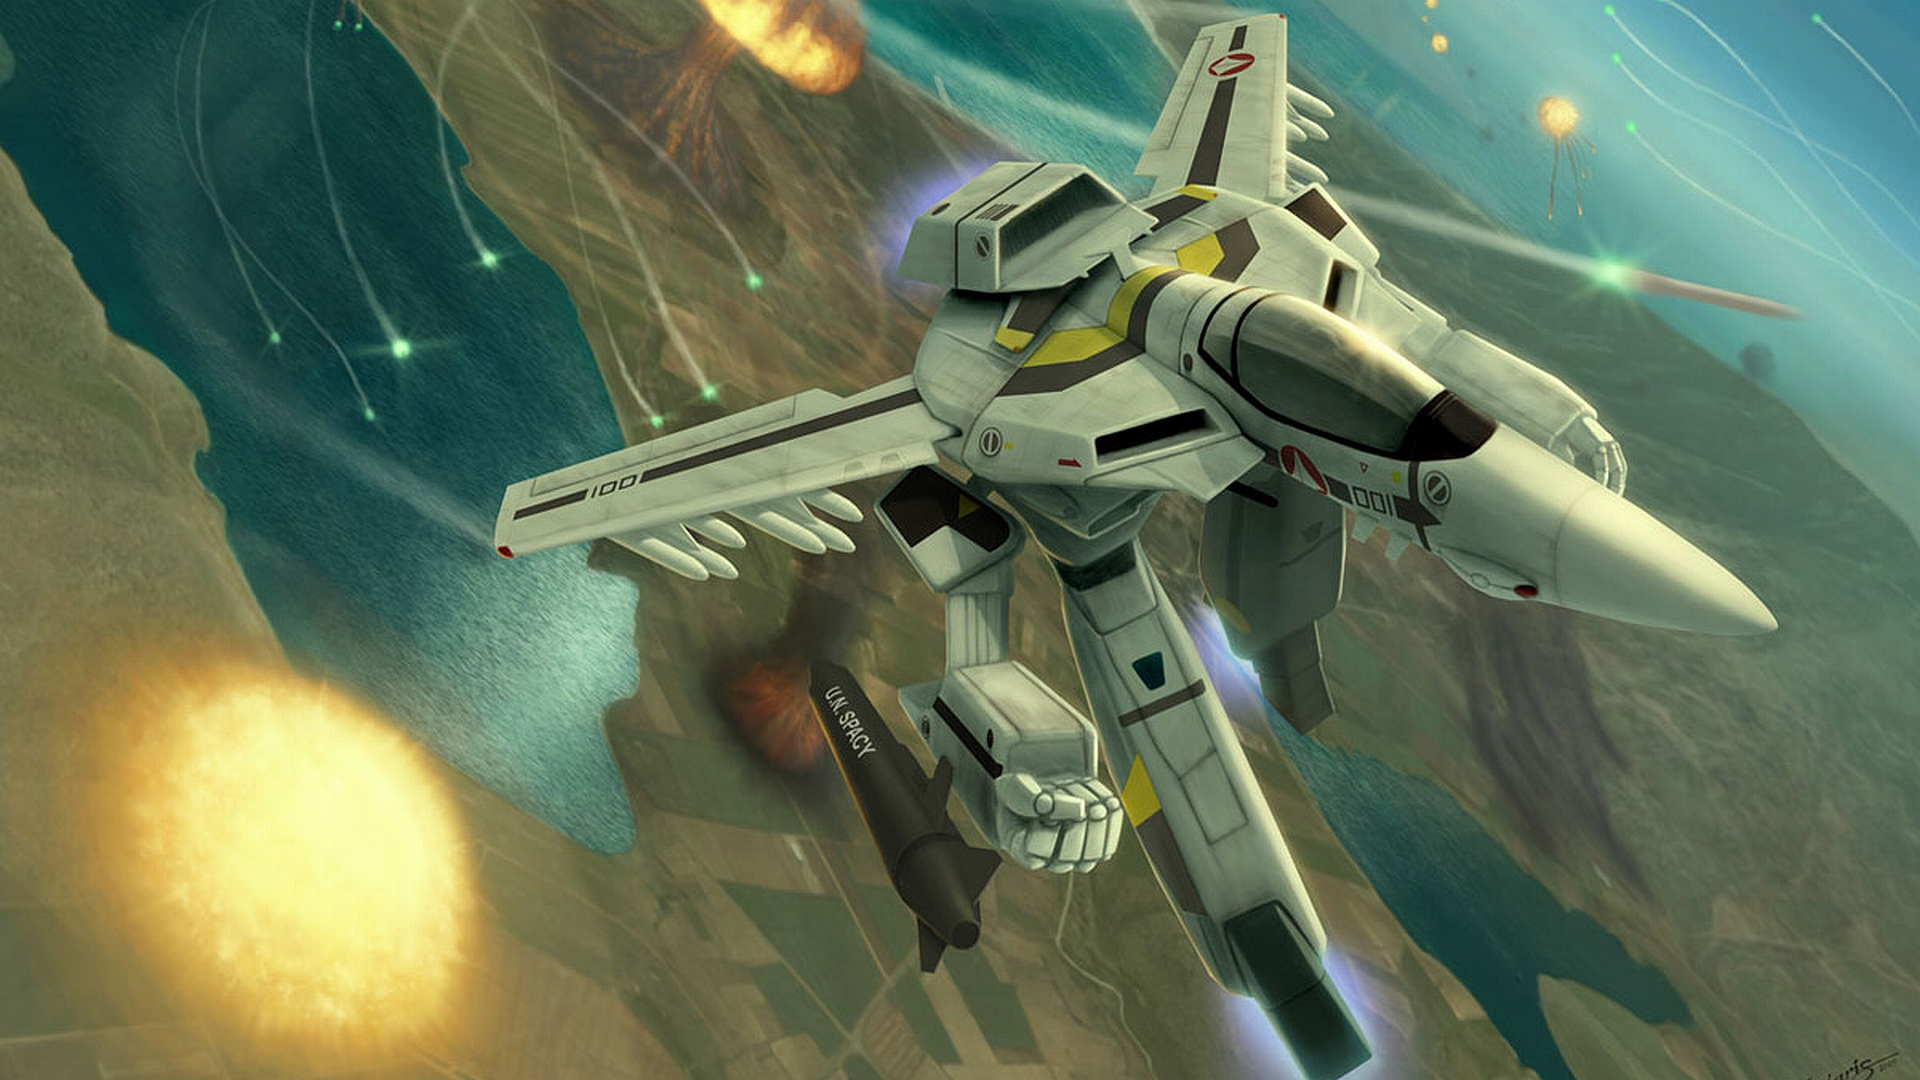 Macross full hd wallpaper and background image 1920x1080 - Robotech 1080p ...